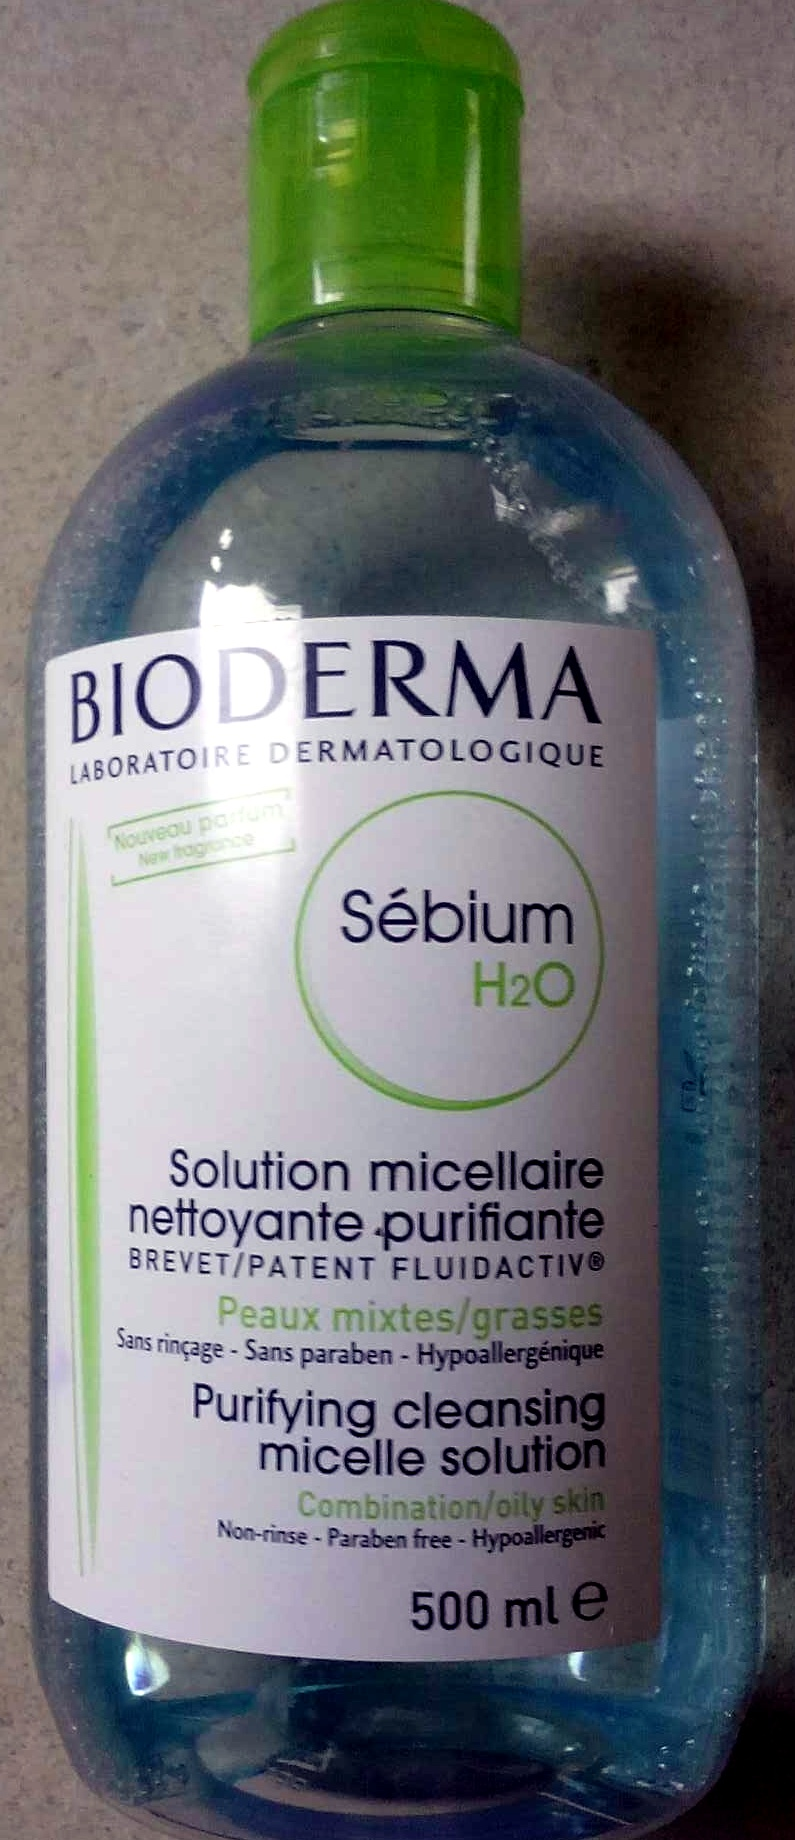 Solution micellaire nettoyante-purifiante - Product